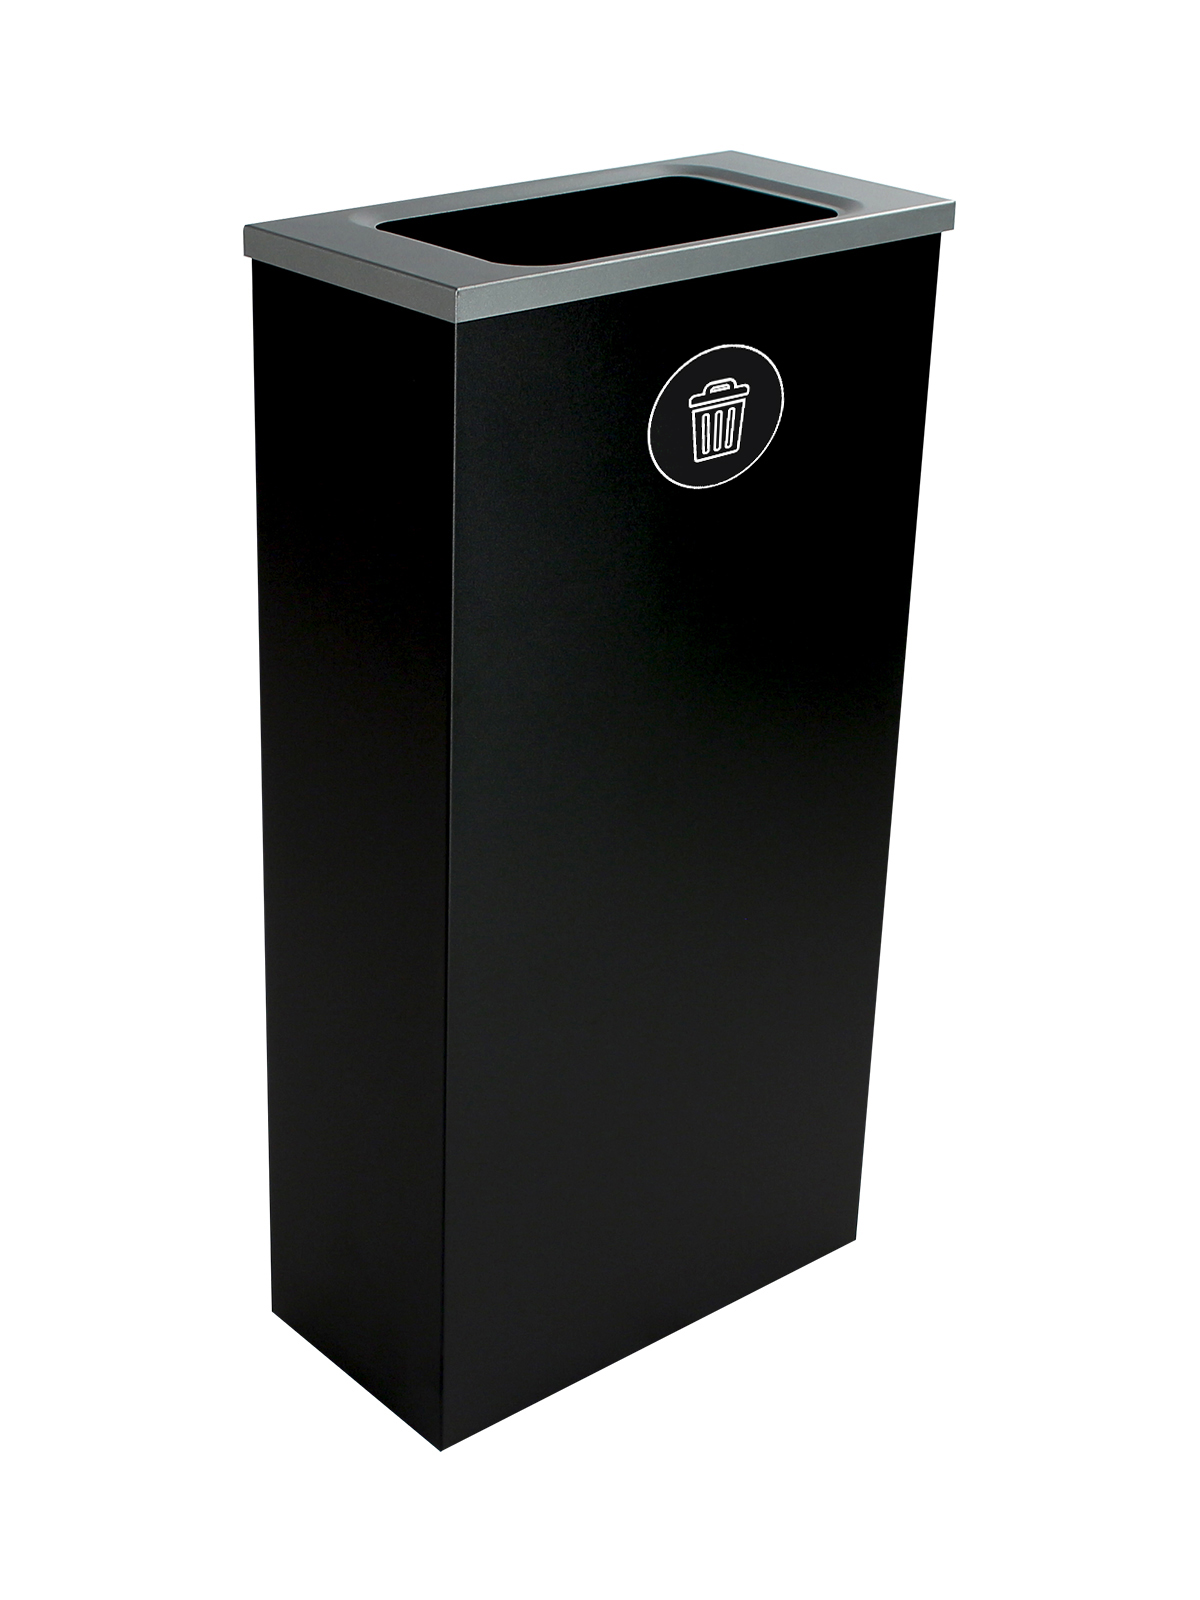 SPECTRUM - Single - Cube Slim - Waste - Full - Black